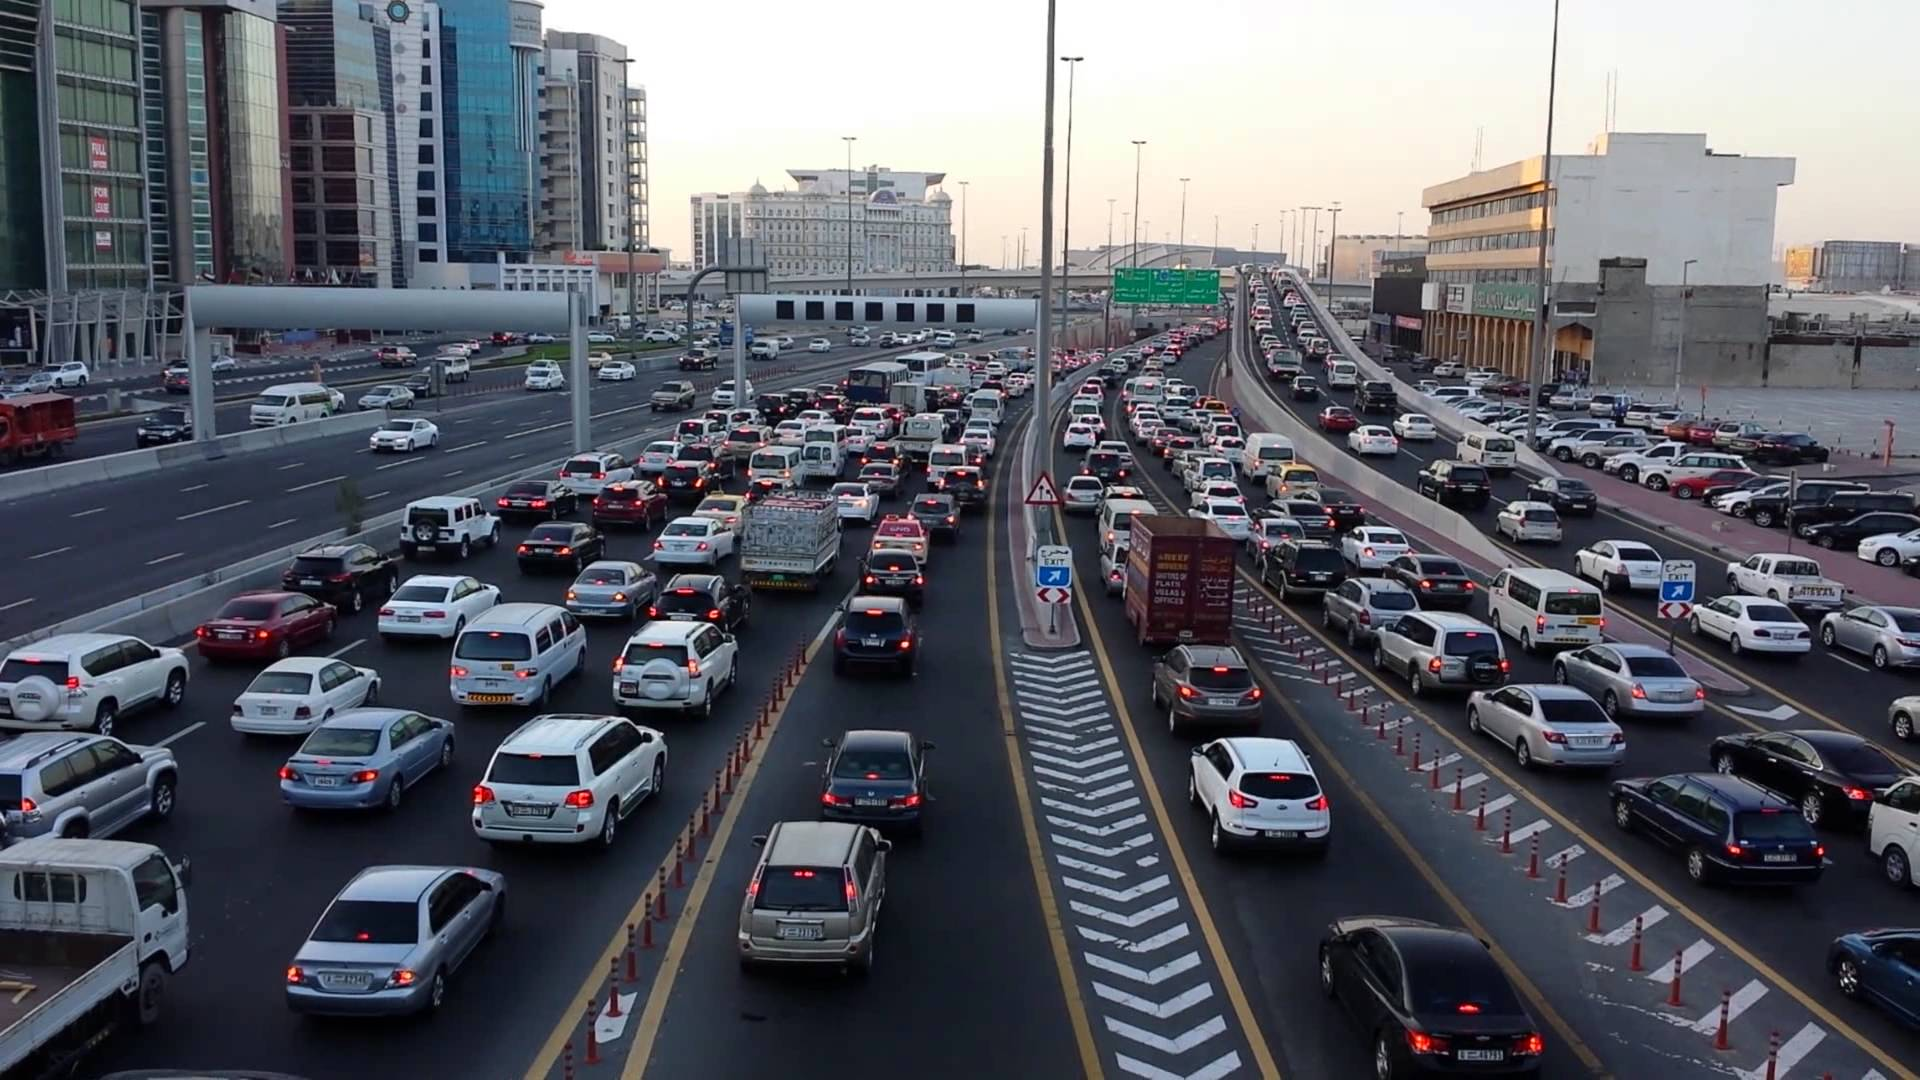 Dubai Attempts To Tackle Traffic Congestion And Increase. Luxury Edinburgh Hotels Export Ssl Certificate. Domin 8 Enterprise Solutions. Mba In Oil And Gas Management. Microsoft Exchange Archive Solution. West Jeff Medical Center Direct Merchant Bank. Patrick Insurance Agency E Learning Platforms. Energy Management Courses Insurance Car Quote. How Often To Breast Pump 401k Pre Tax Or Roth